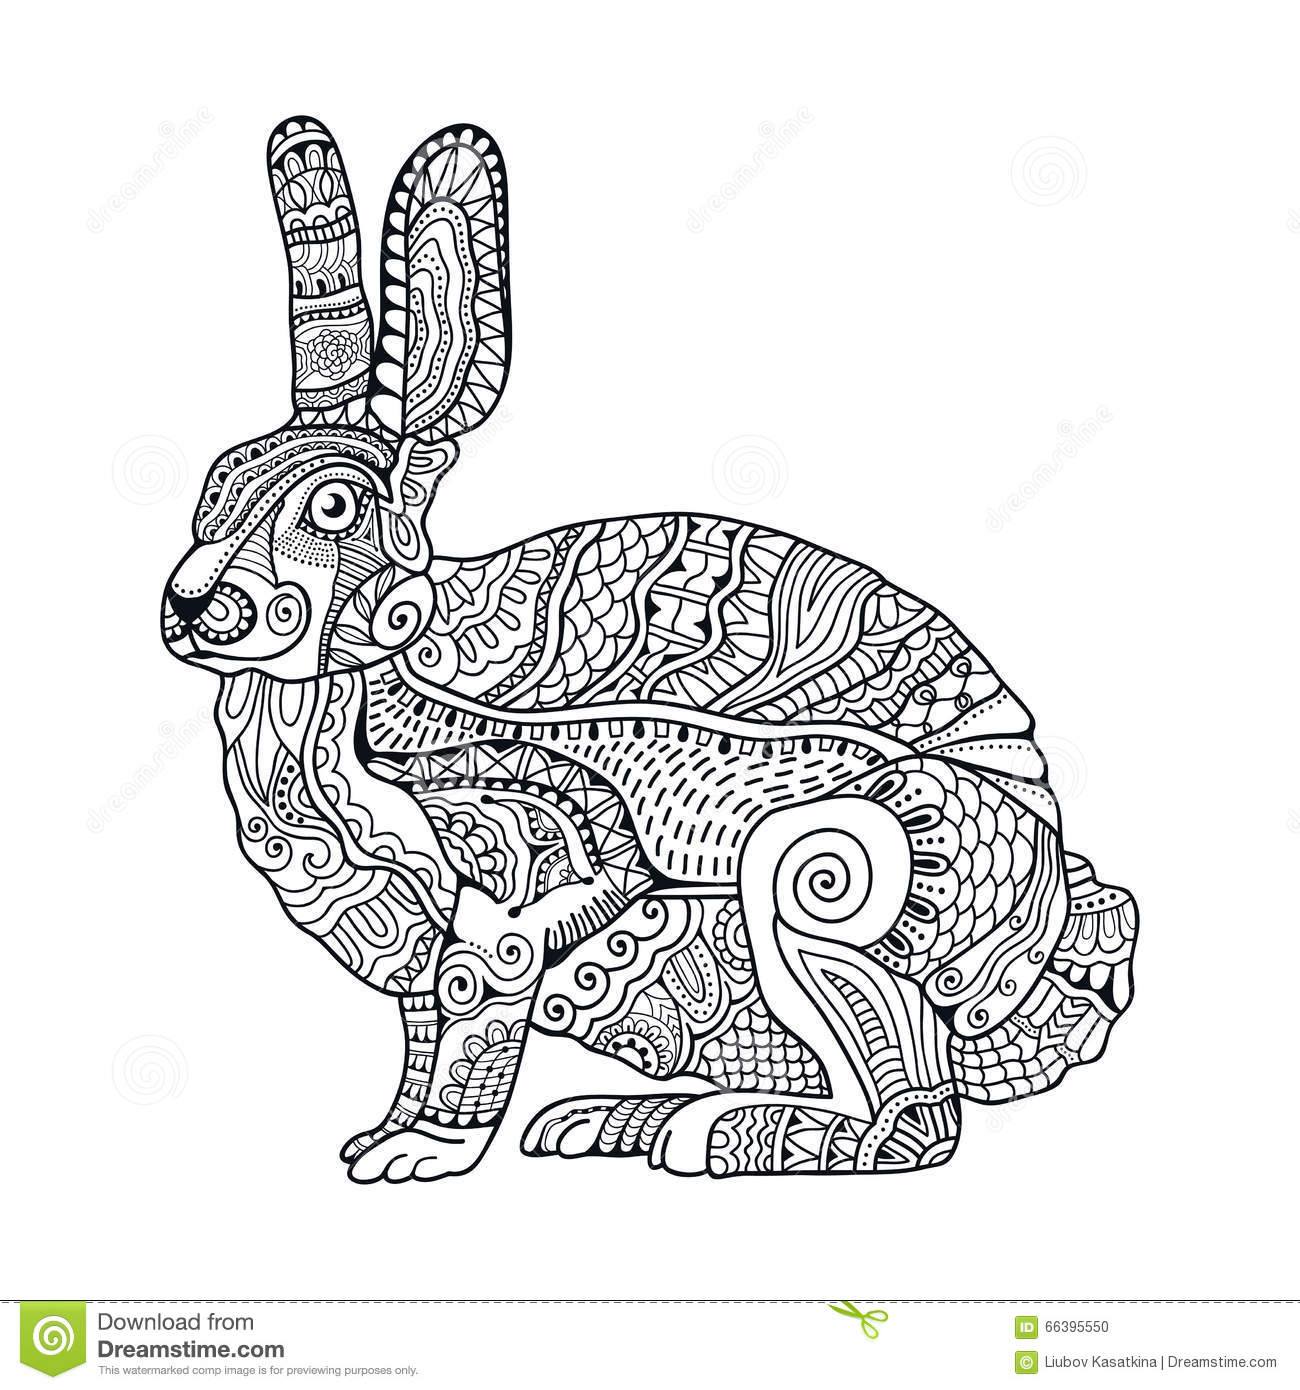 Zentangle Stylized Rabbit Hand Drawn Vintage Doodle Vector Illustration For Easter Illustration 66395550 Megapixl